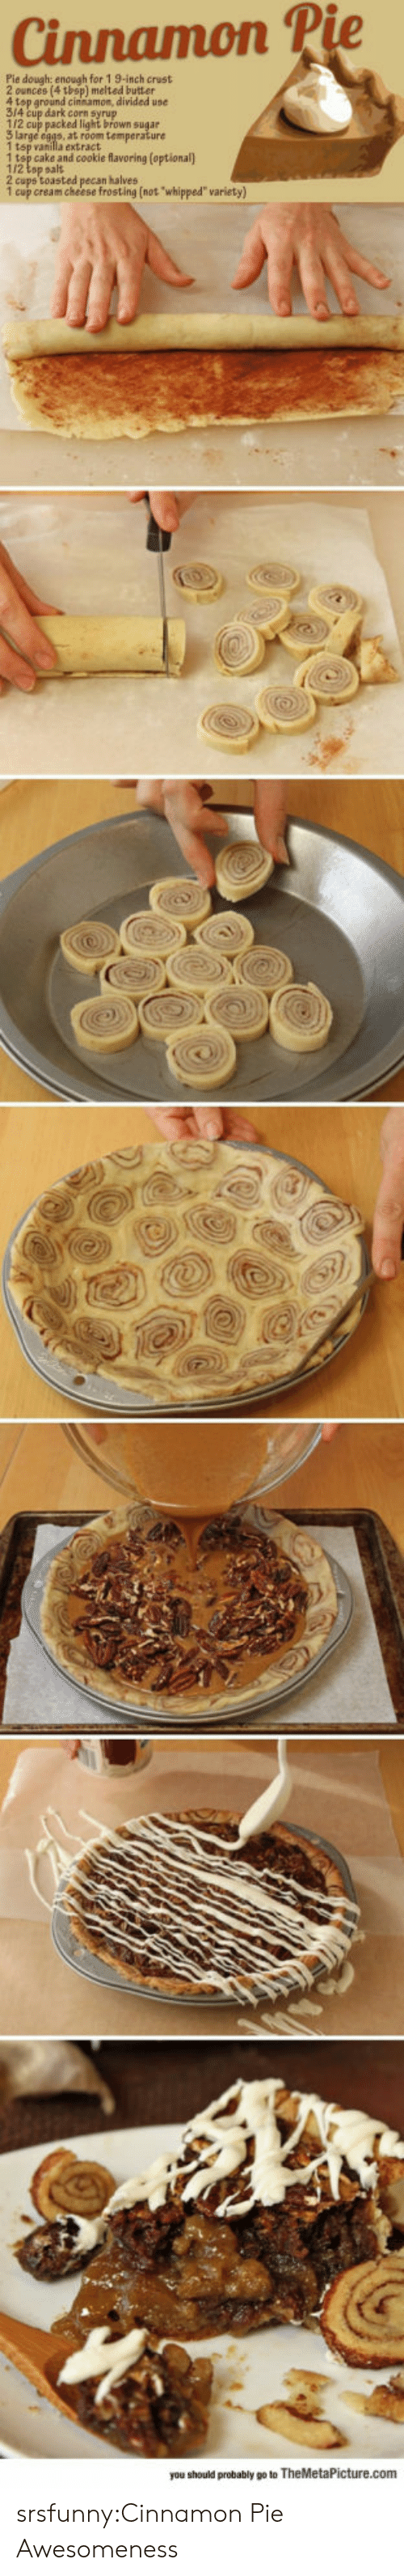 """Awesomeness: Cinnamon P  Pie dough: enough for 1 9-inch crust  ) melted butter  4 top ground cinsamon, divided use  314 cup dark corn syrup  112 cup packed light brown sugar  1 tsp vanilla extract  1 tsp cake and cookie flavoring (optional)  1/2 tsp salt  2 cups toasted pecan halves  1 cup cream cheese frosting (not whipped"""" variety)  you should probably go to TheMetaPicture.com srsfunny:Cinnamon Pie Awesomeness"""